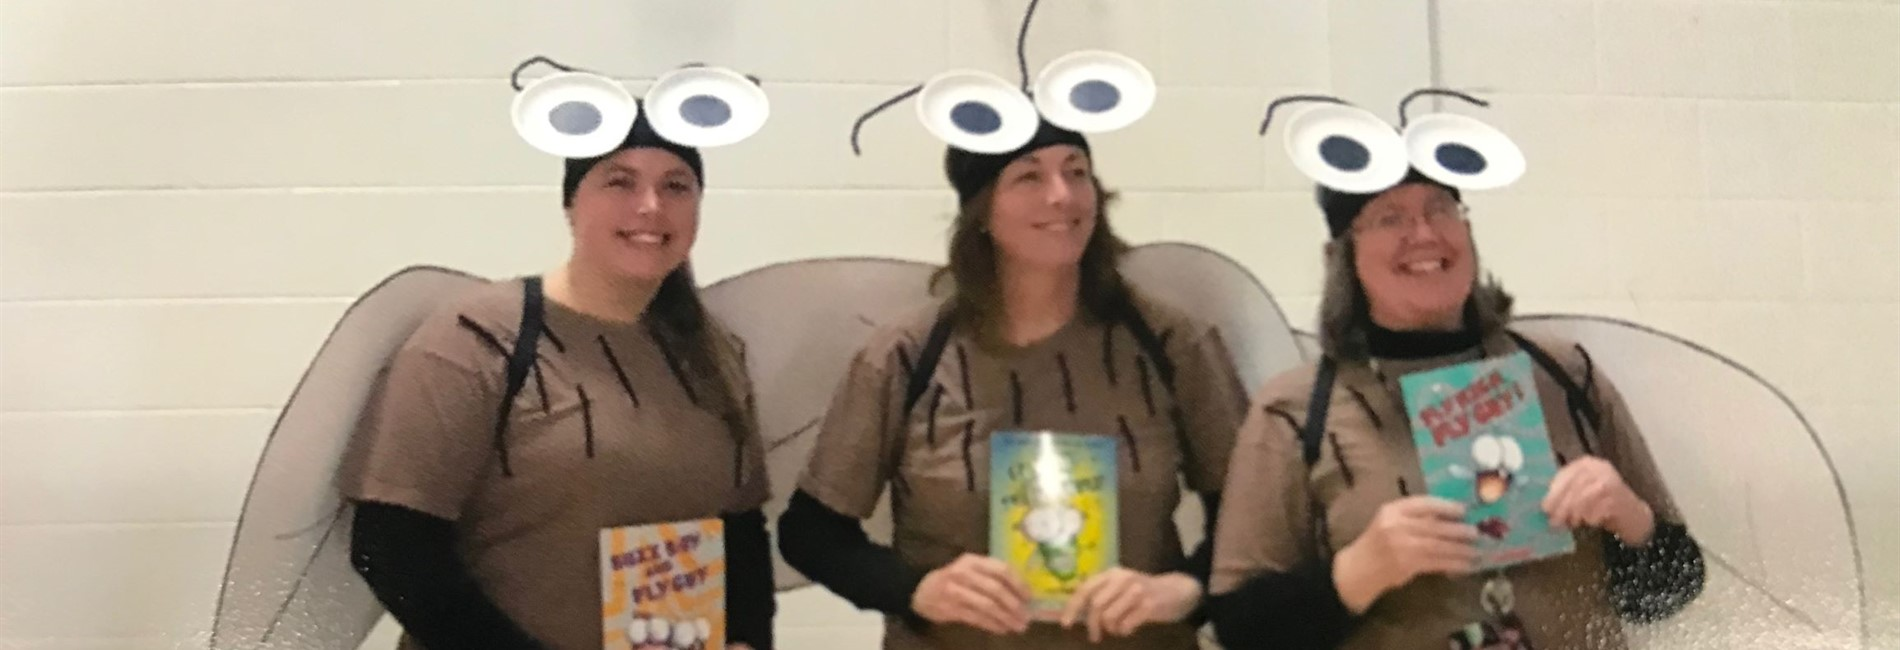 Pic:  teachers dressed as Fly Guy